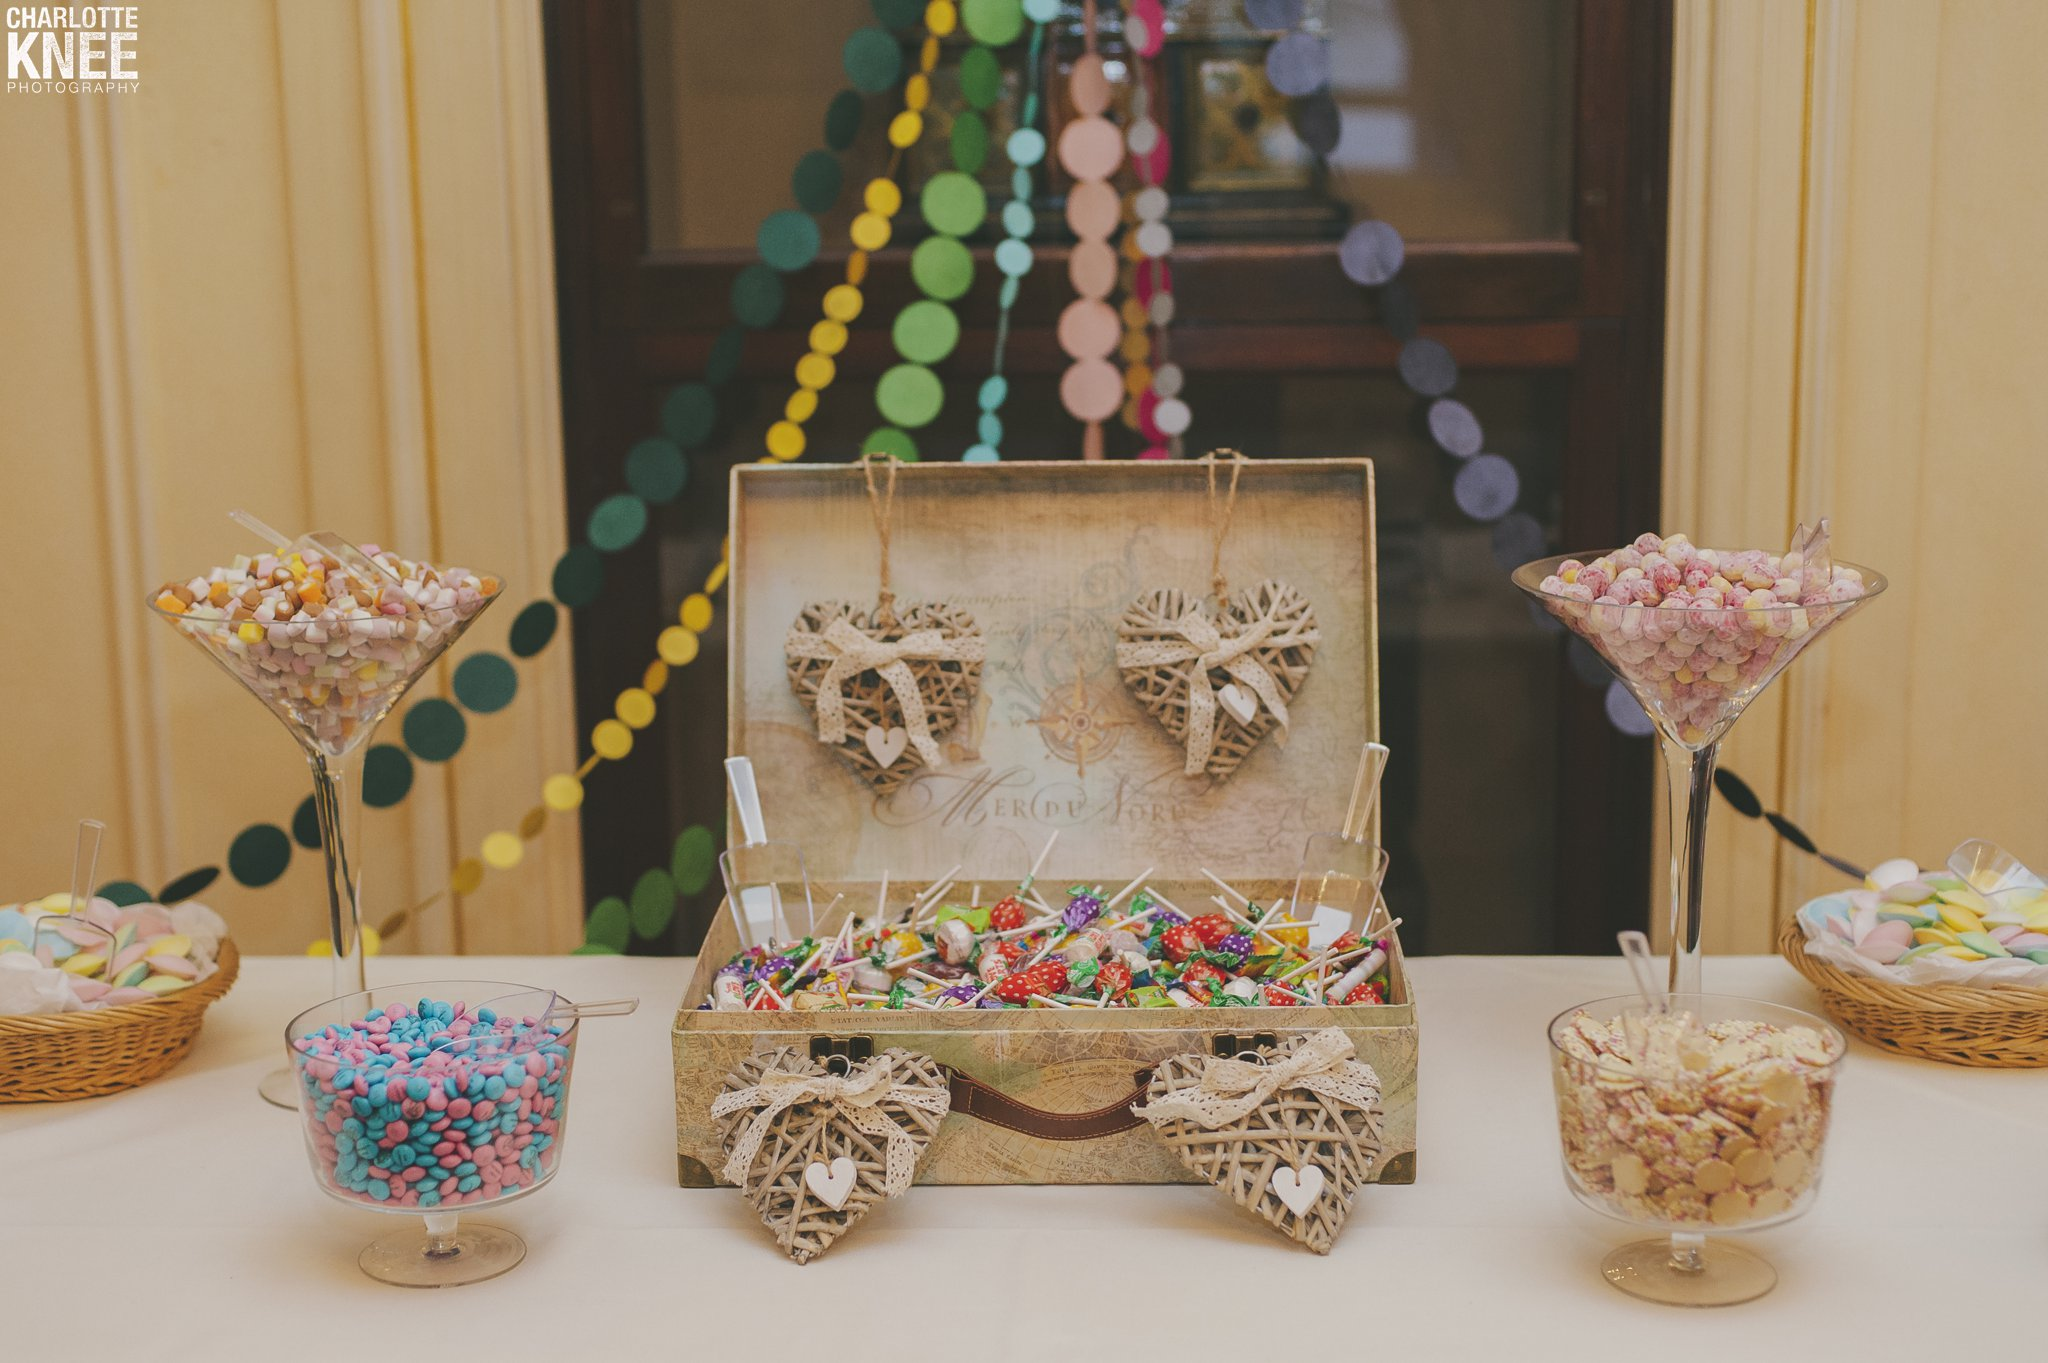 Saddlers Hall London Wedding Photography Copyright Charlotte Knee Photography_0165.jpg